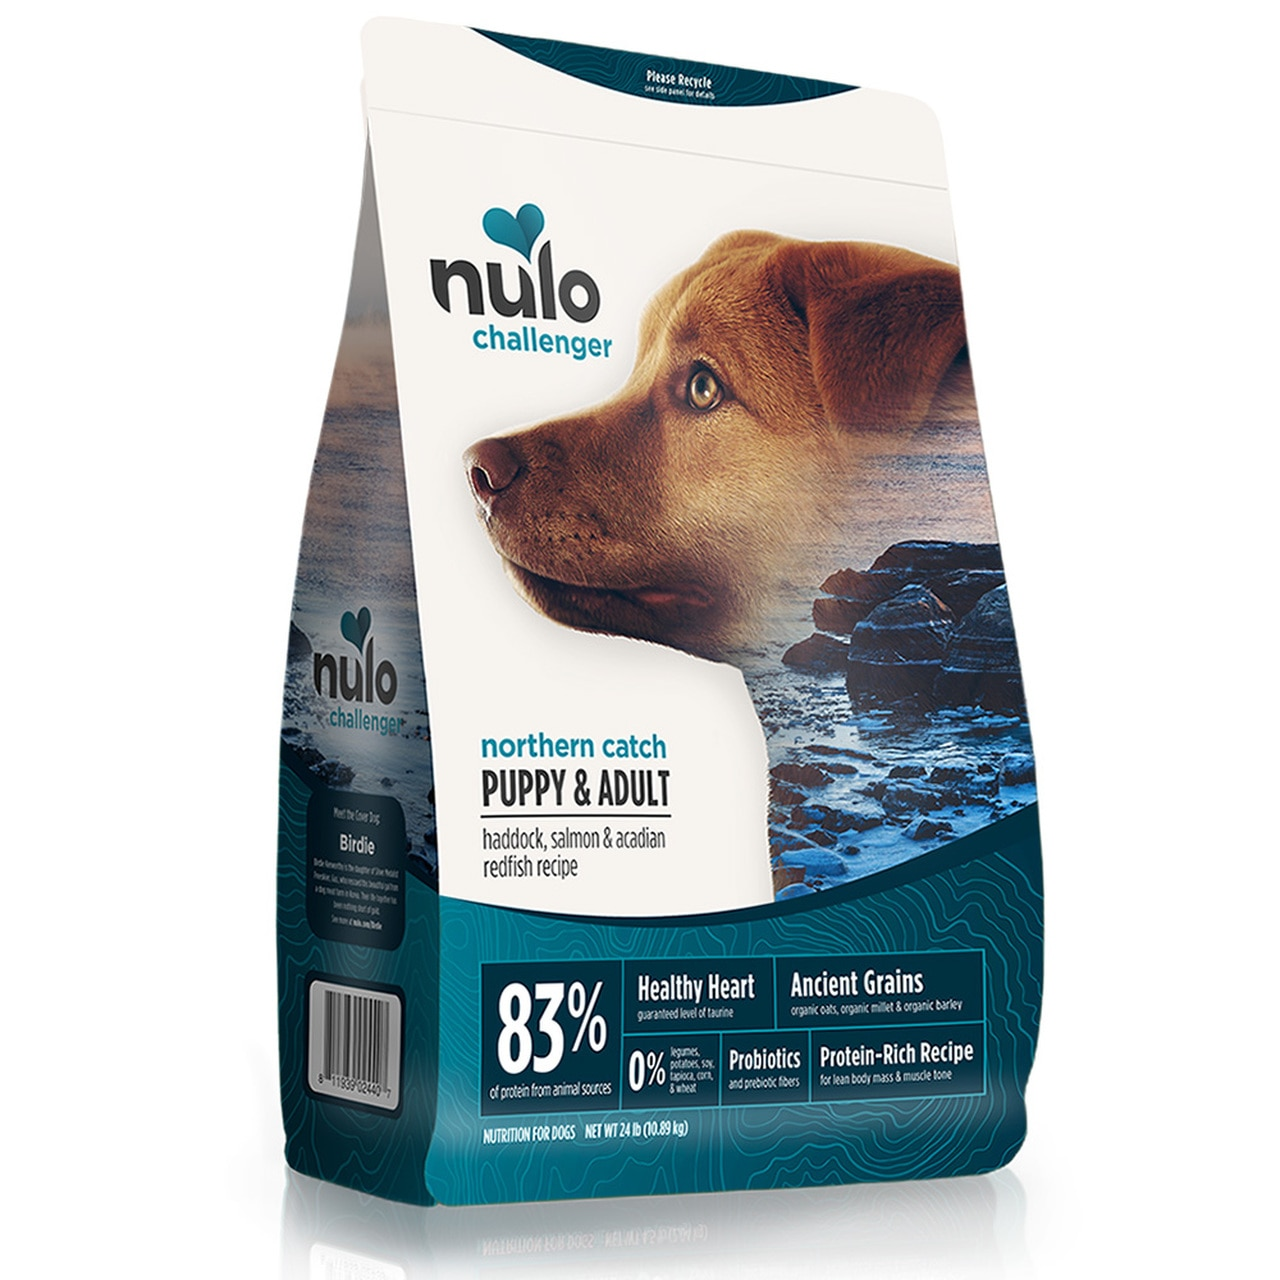 Nulo Challenger Northern Catch Haddok, Salmon & Redfish Puppy & Adult Dry Dog Food, 4.5-lb